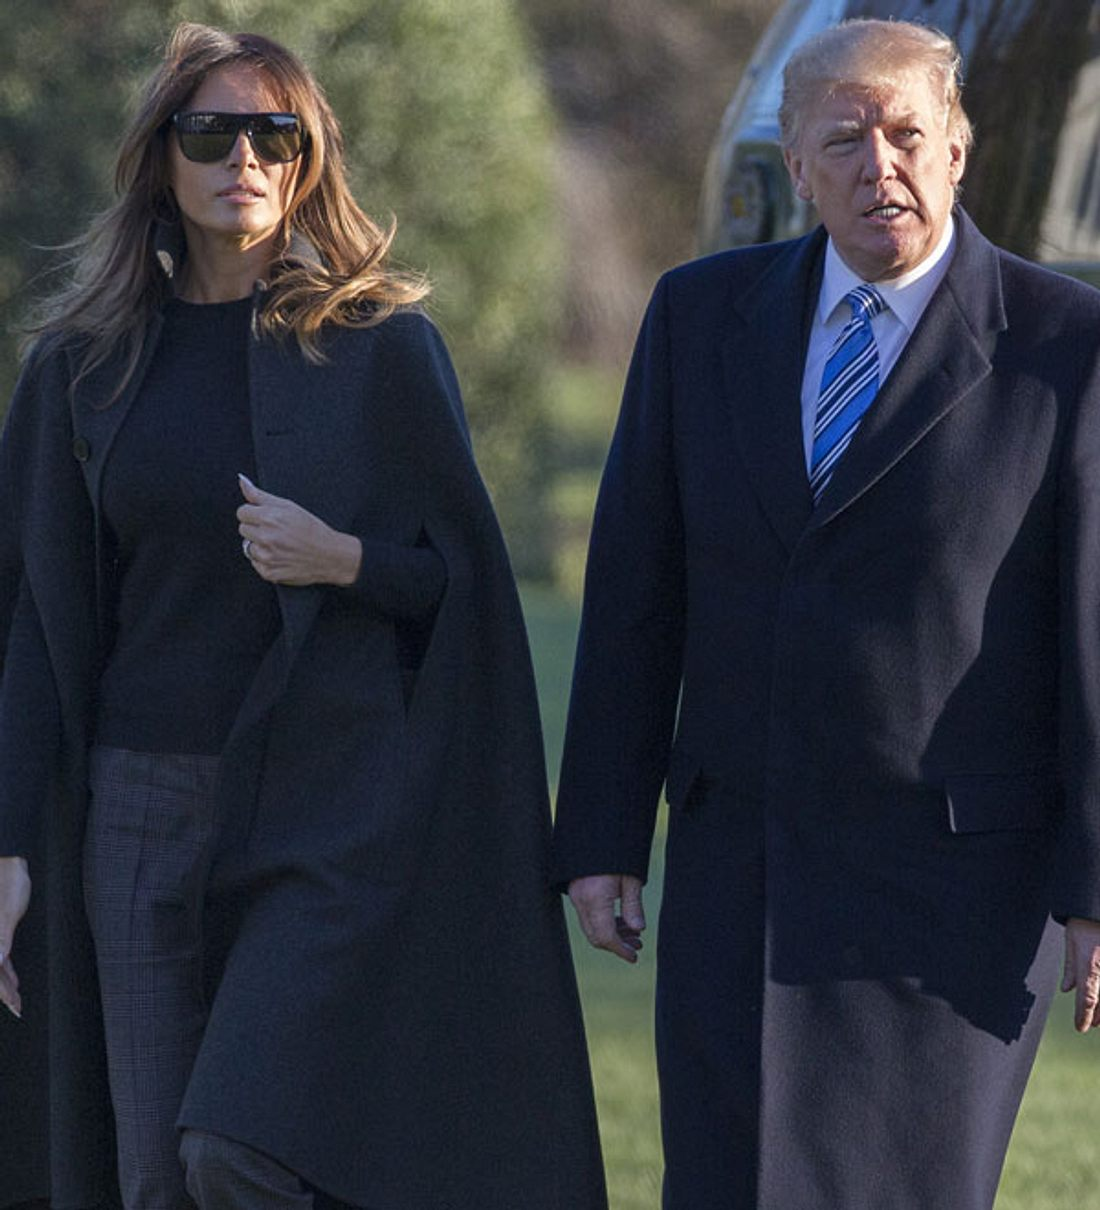 Donald & Melania Trump: Flammen-Drama! Ein Toter im Trump-Tower!